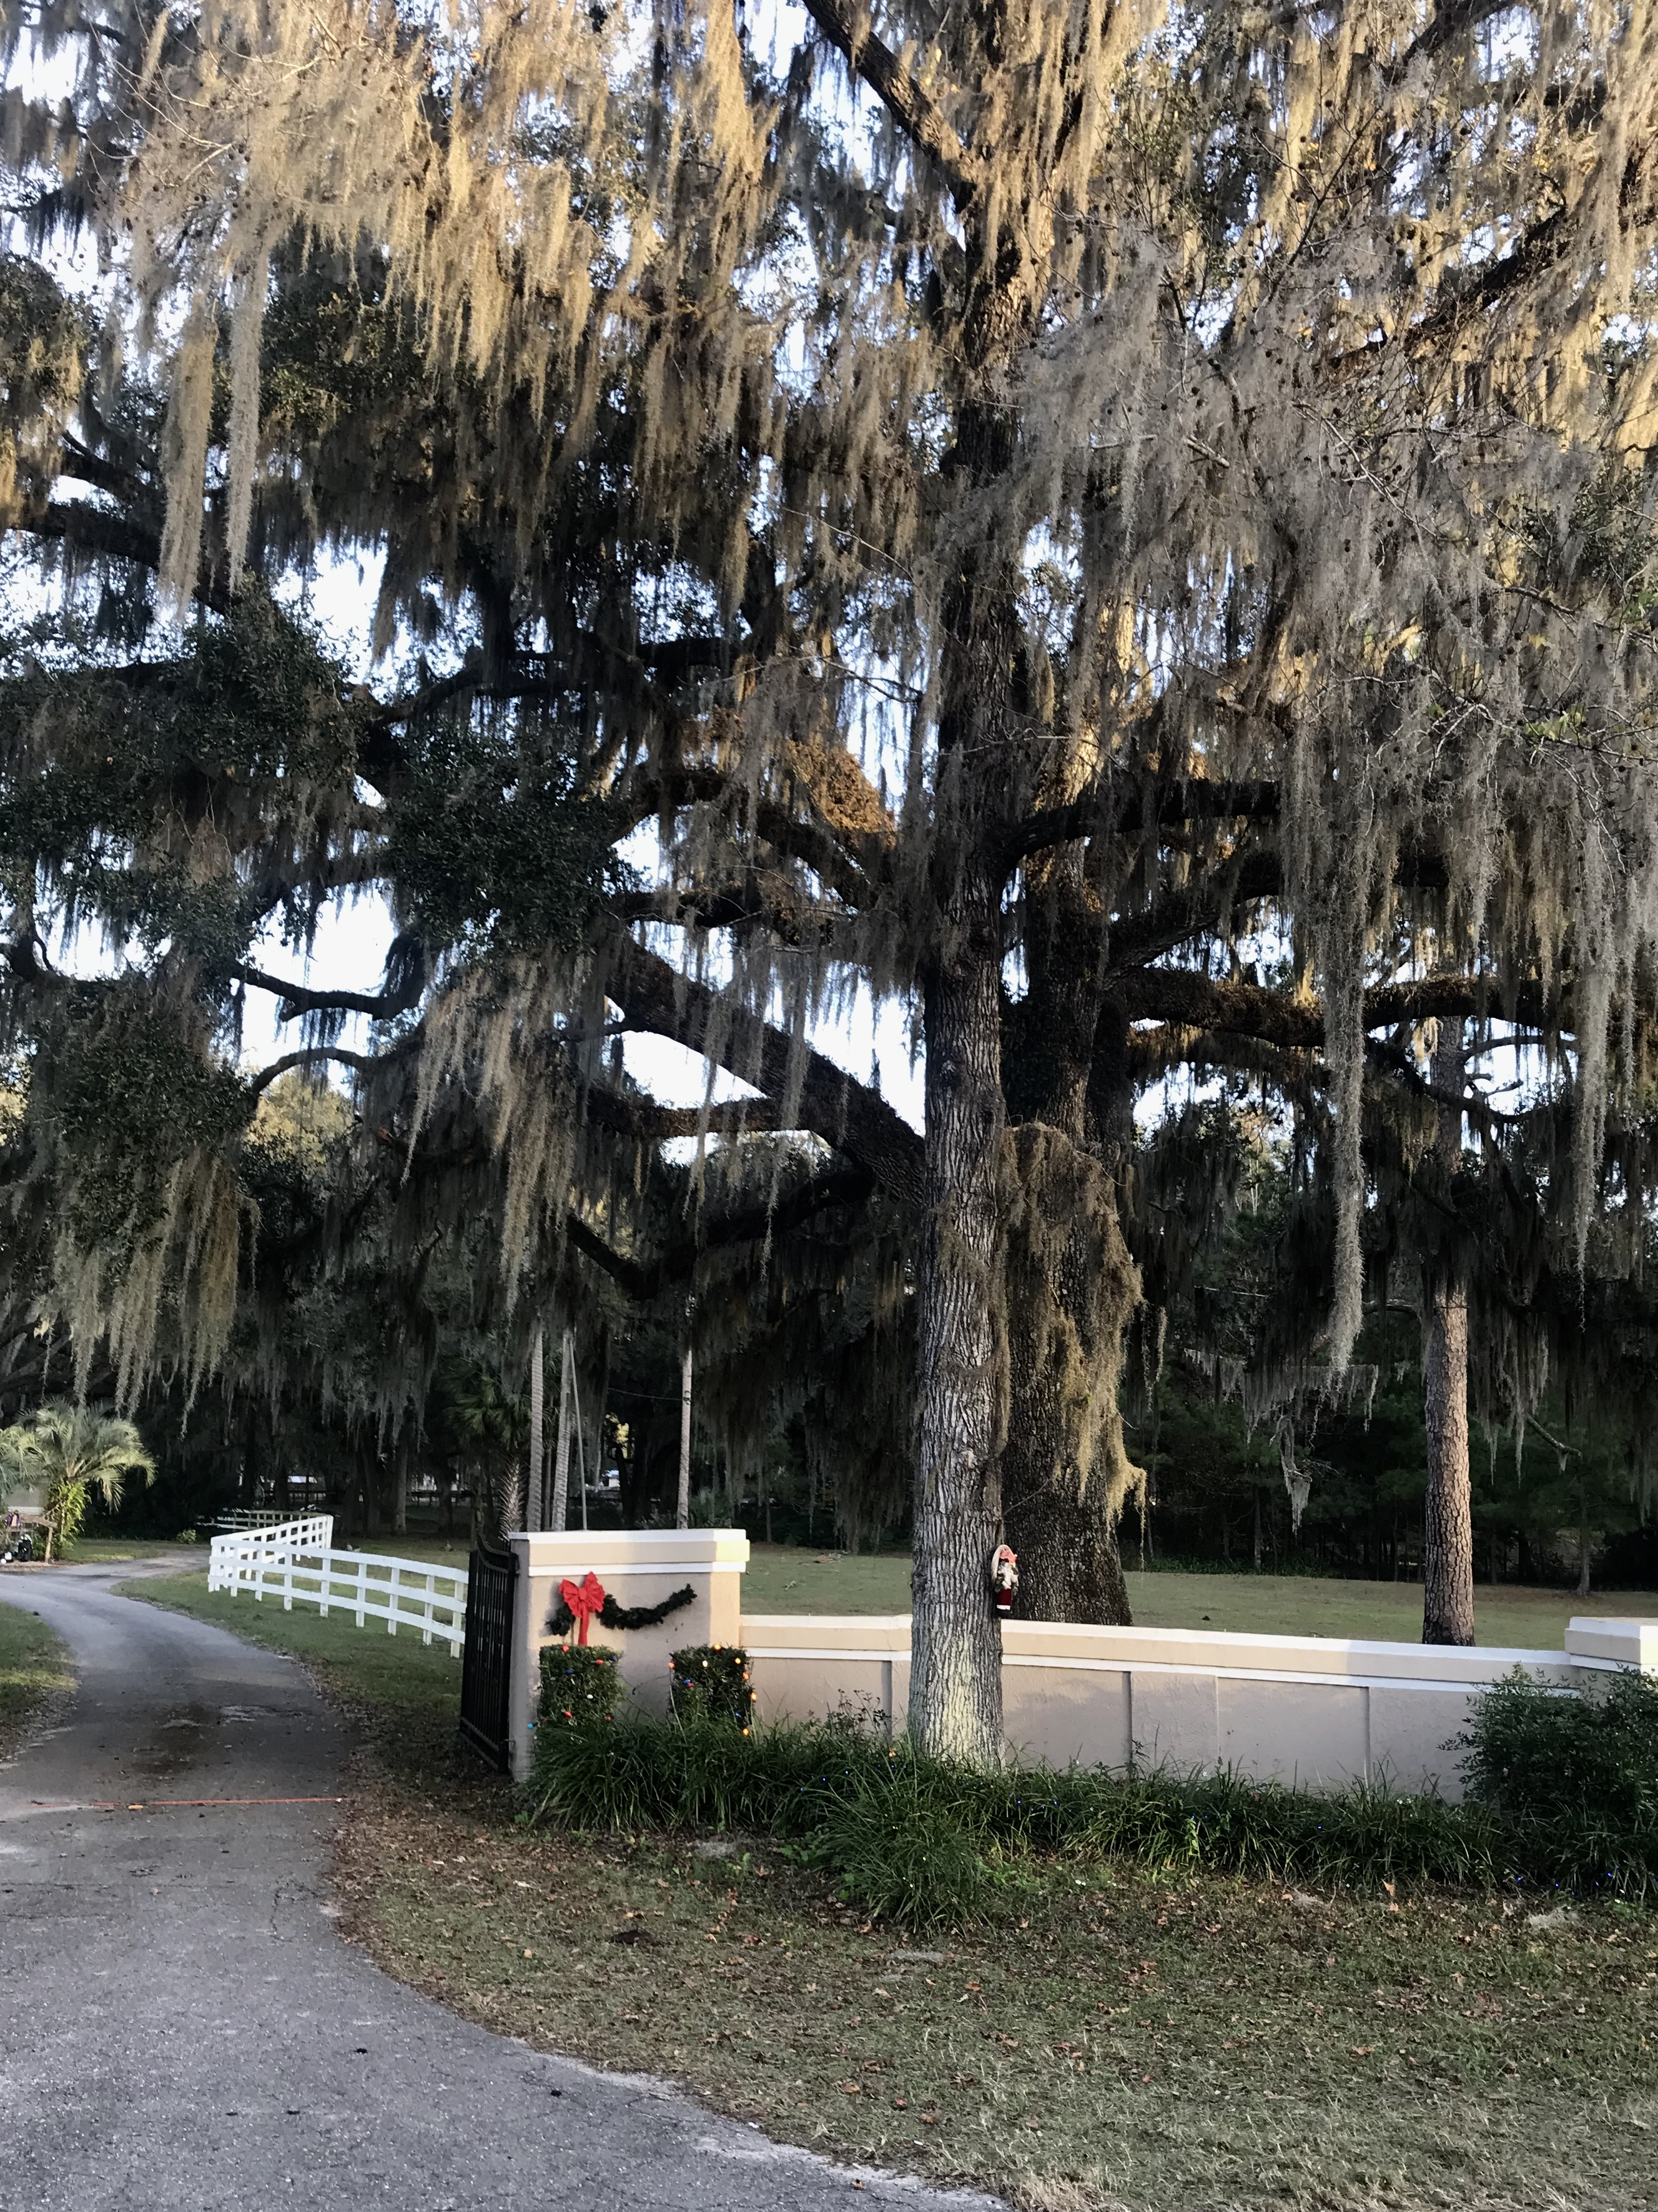 Drive for through Ocala, Florida for some southern scenery that can't be beat.